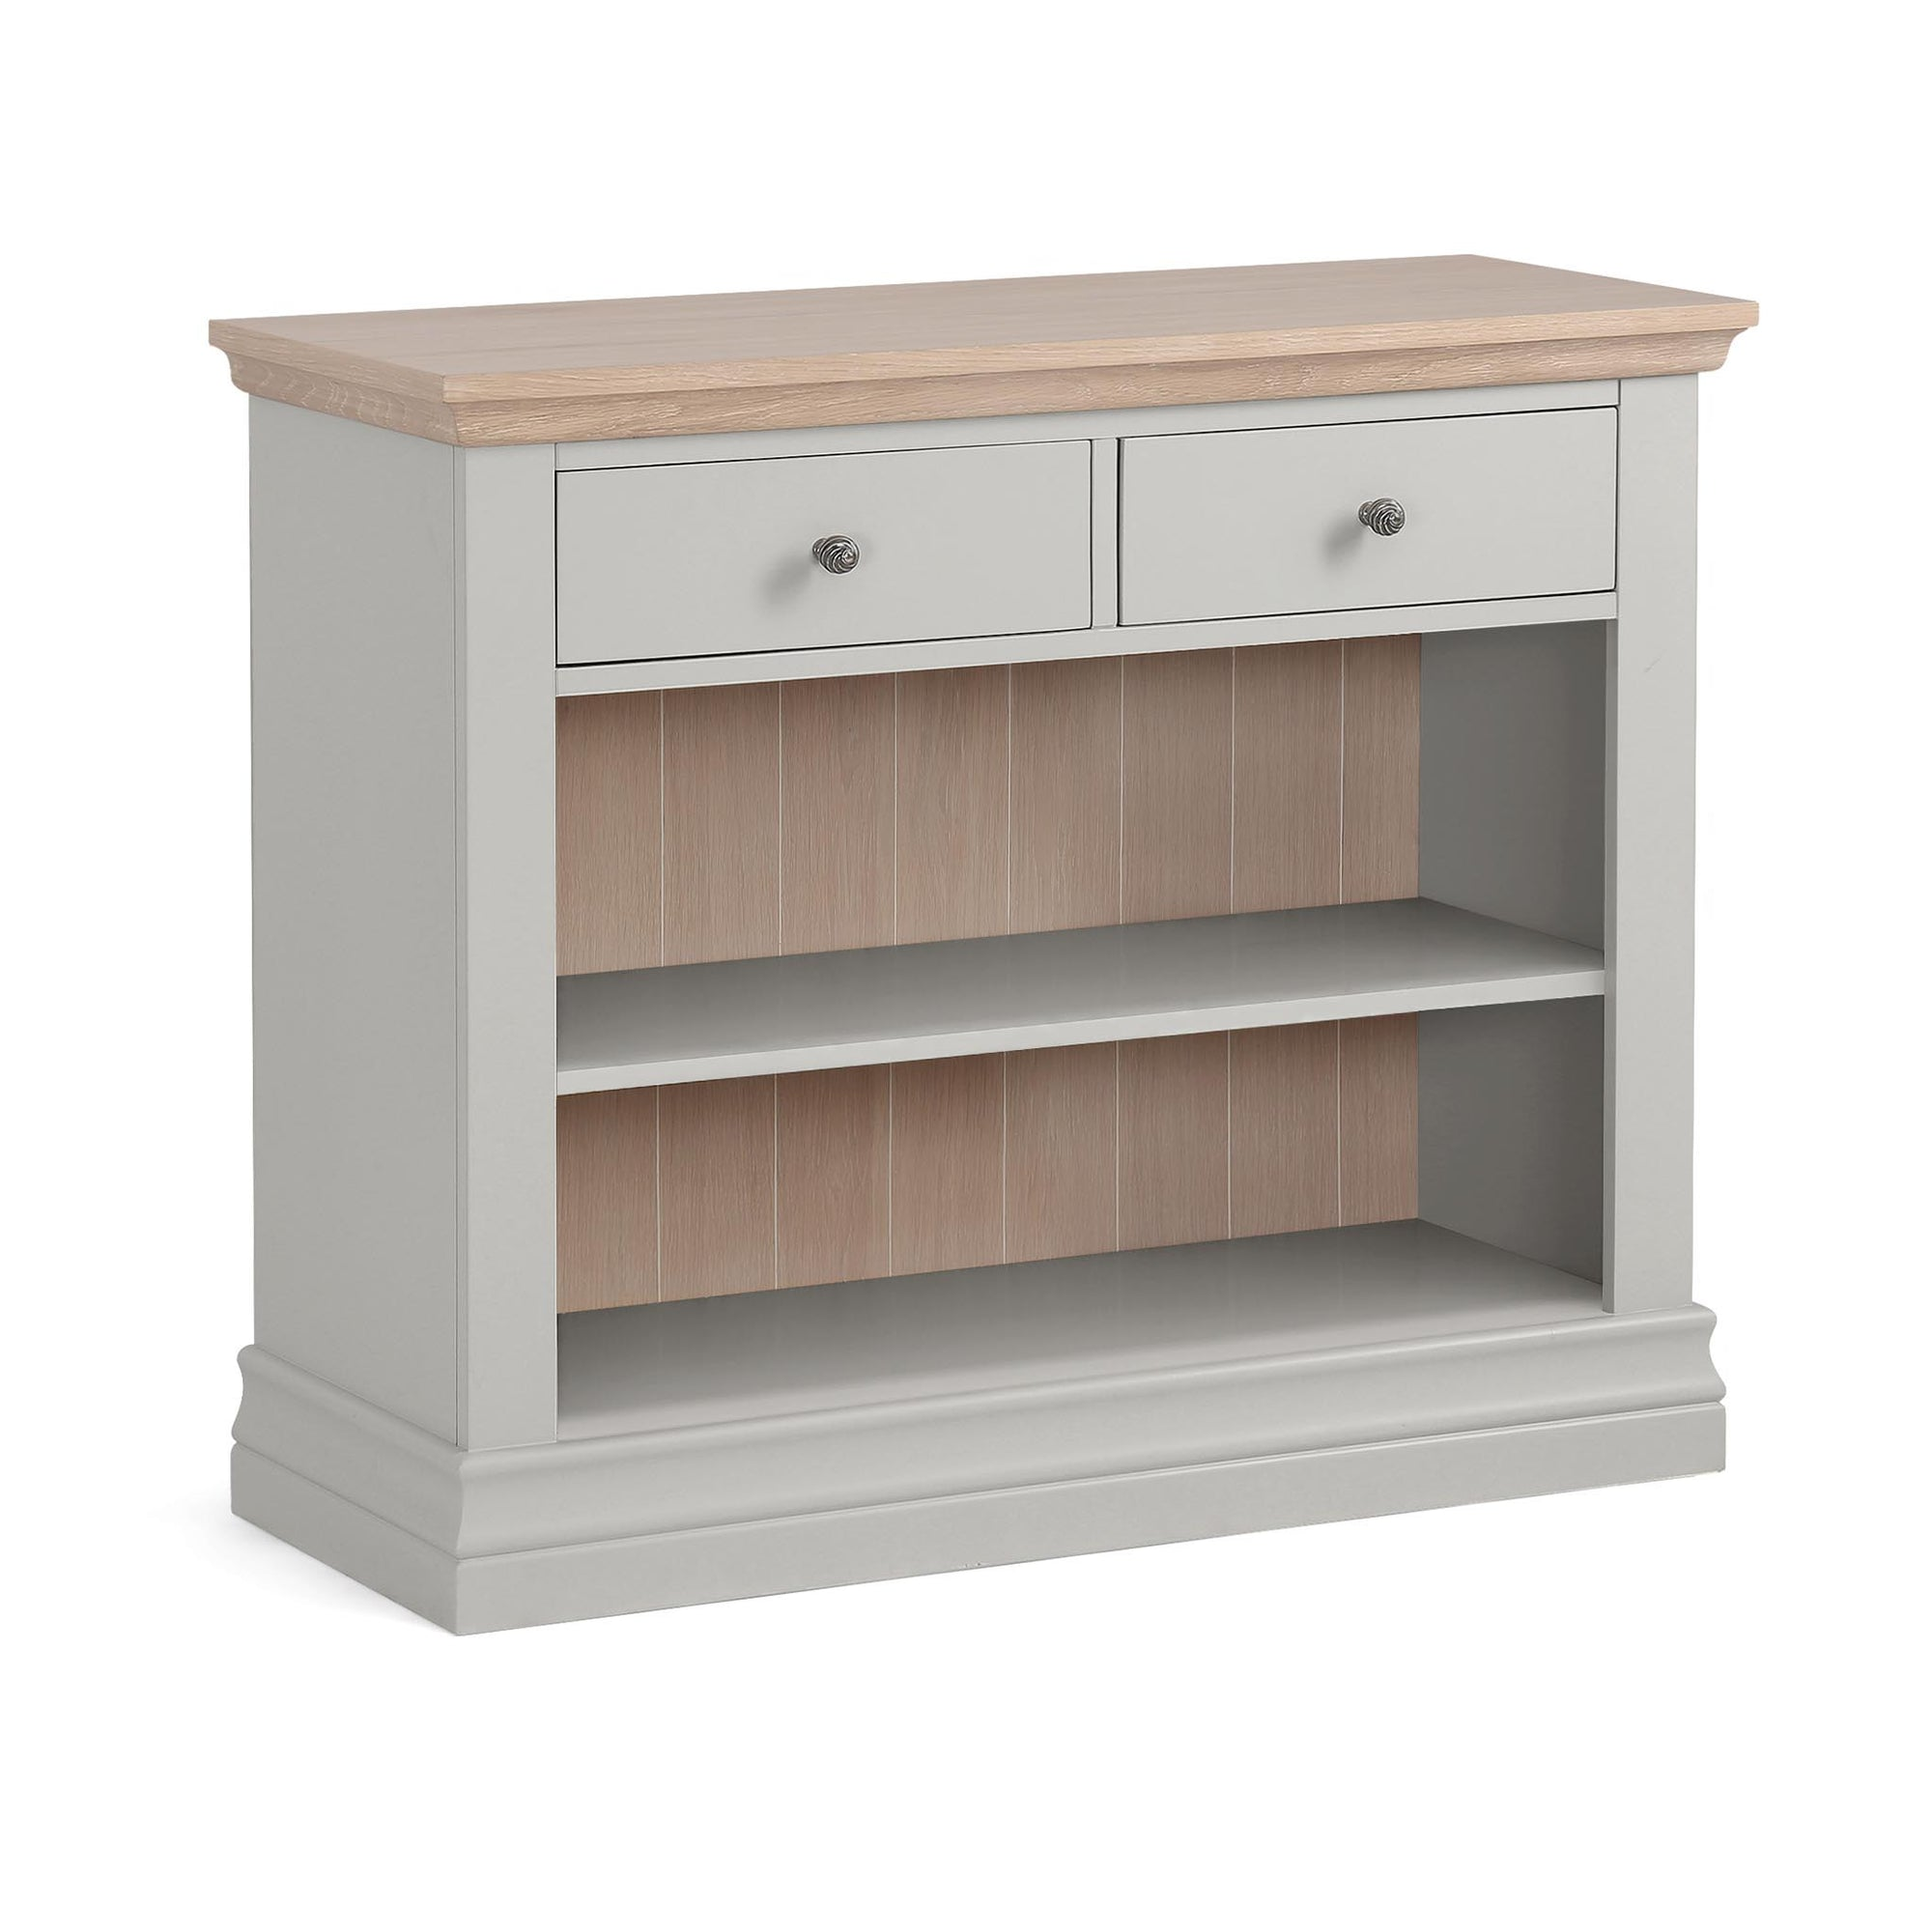 Melrose Grey Low Bookcase with Drawers from Roseland Furniture